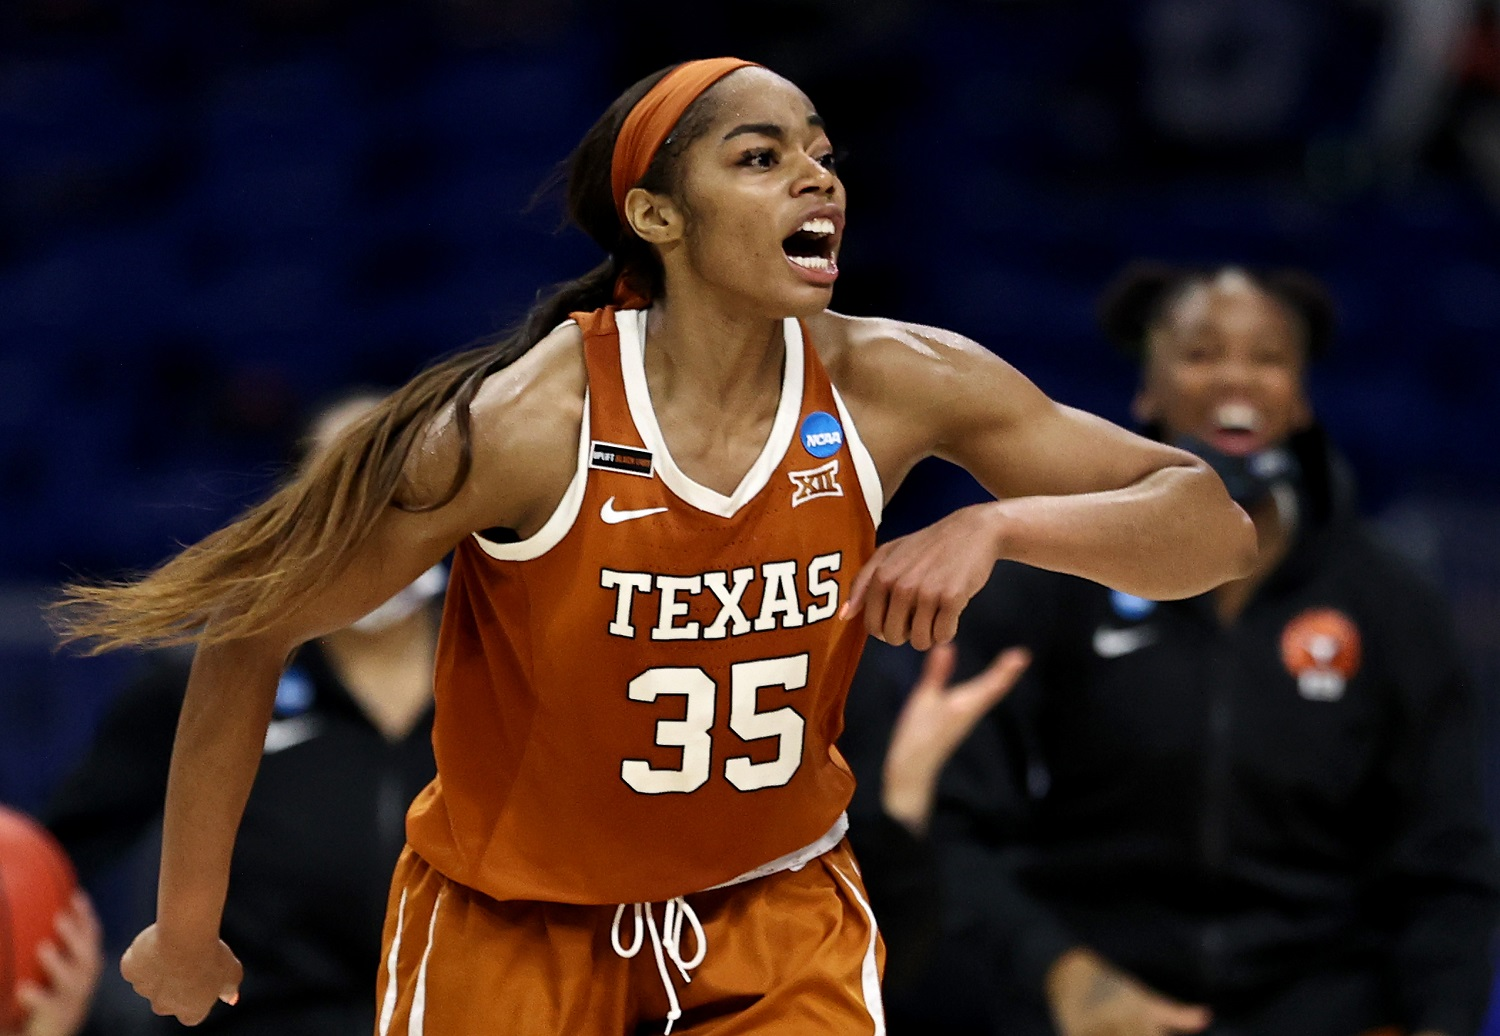 Charli Collier of the Texas Longhorns celebrates the lead late in the fourth quarter against the Maryland Terrapins during the NCAA Tournament Sweet 16 at the Alamodome. Elsa/Getty Images